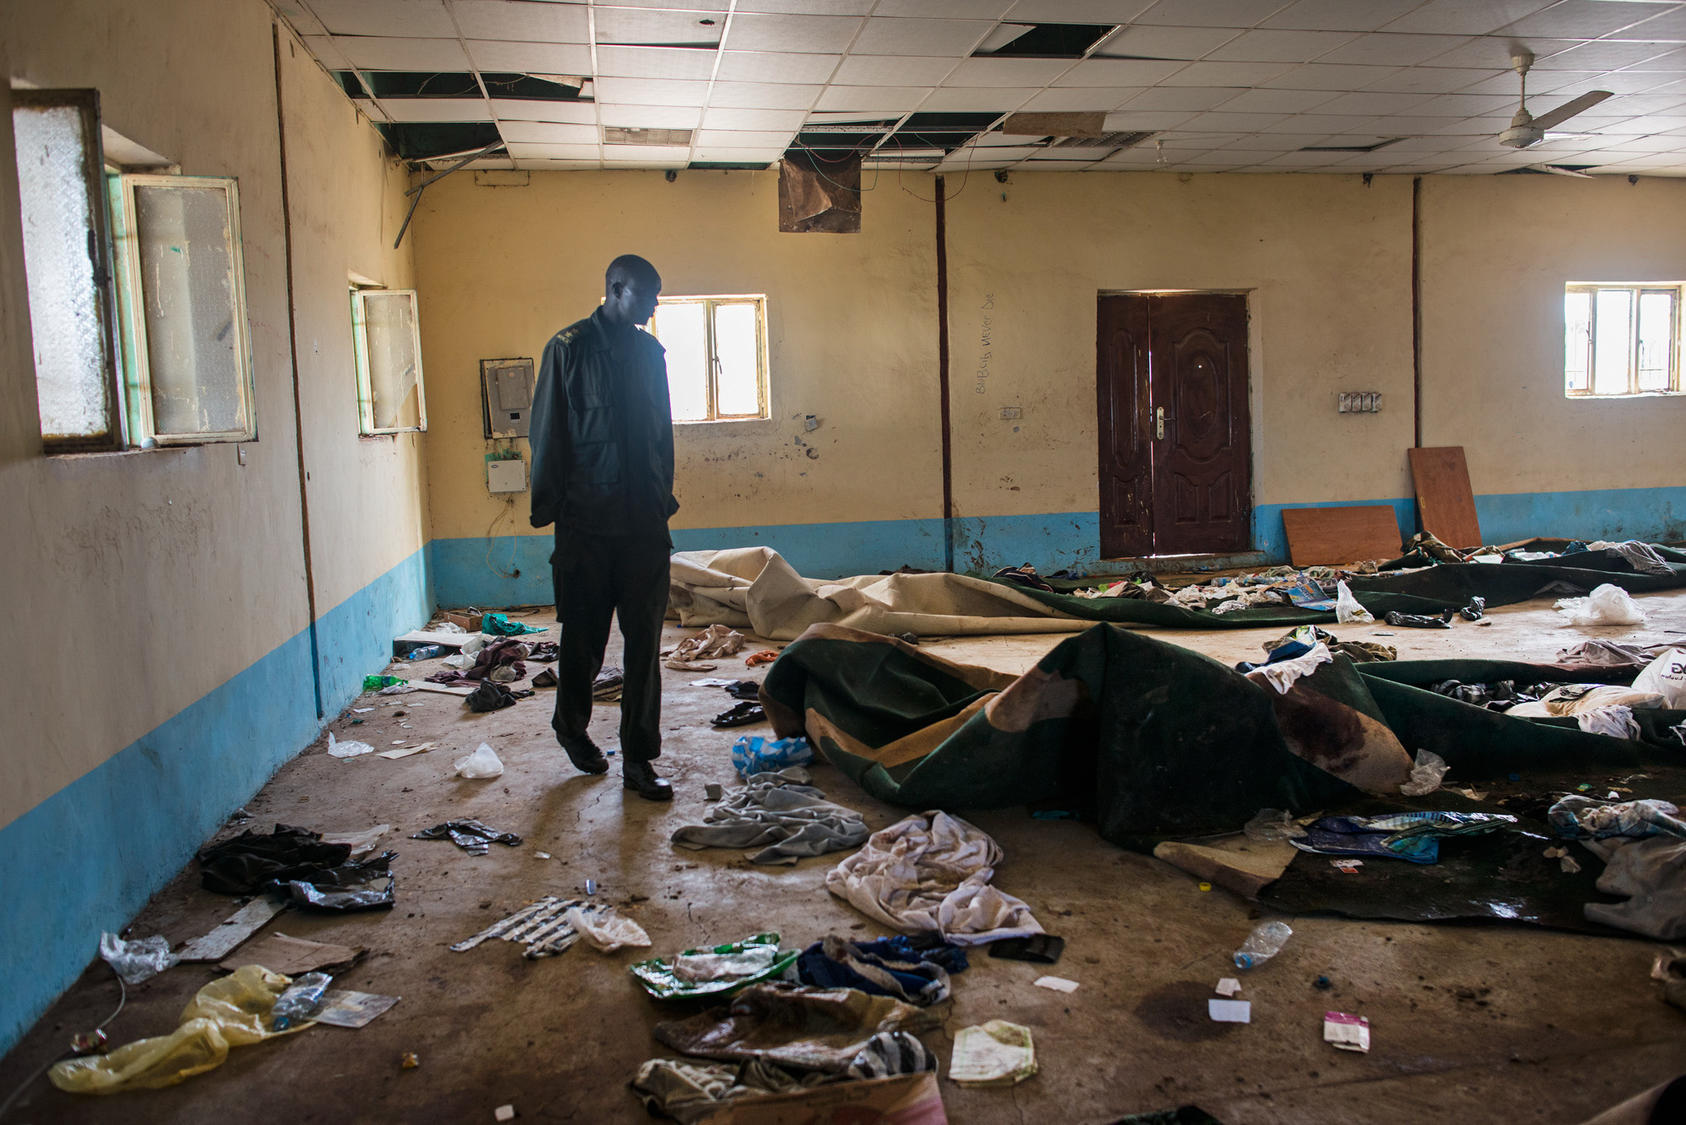 An opposition soldier walks through the remnants of a mosque in Bentiu, South South Sudan, where hundreds of people were killed while taking refuge from the fighting, May 3, 2014. Photo Courtesy of The New York Times/Lynsey Addario